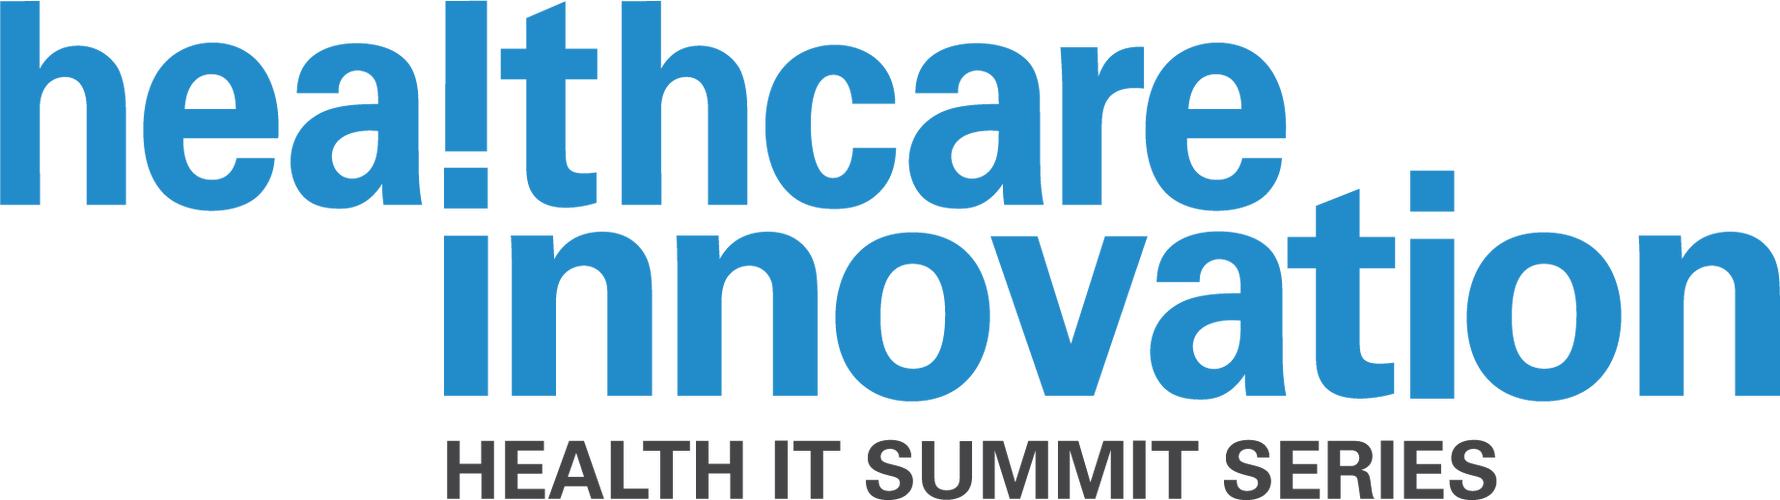 2019 California Health IT Summit - Los Angeles